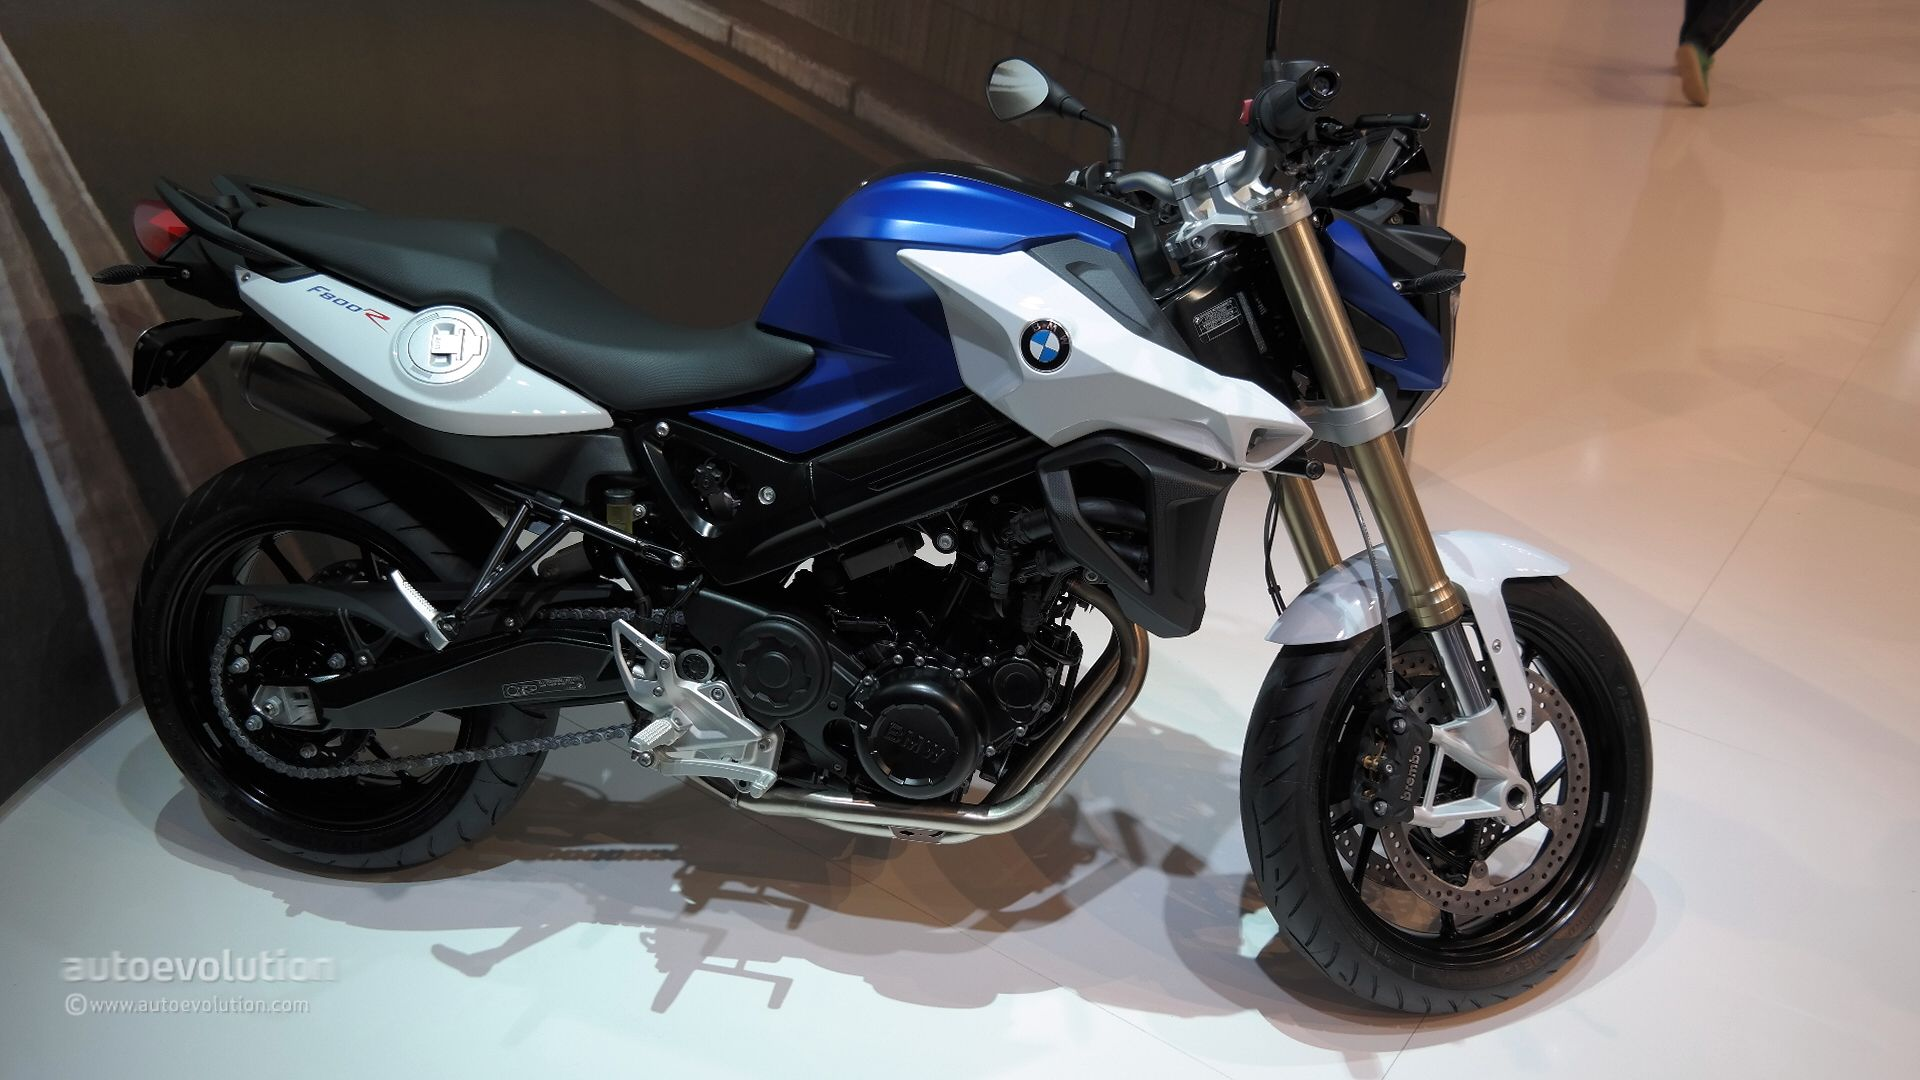 bmw brings 2015 f800r to eicma 2014 with new headlight arrangement live photos autoevolution. Black Bedroom Furniture Sets. Home Design Ideas